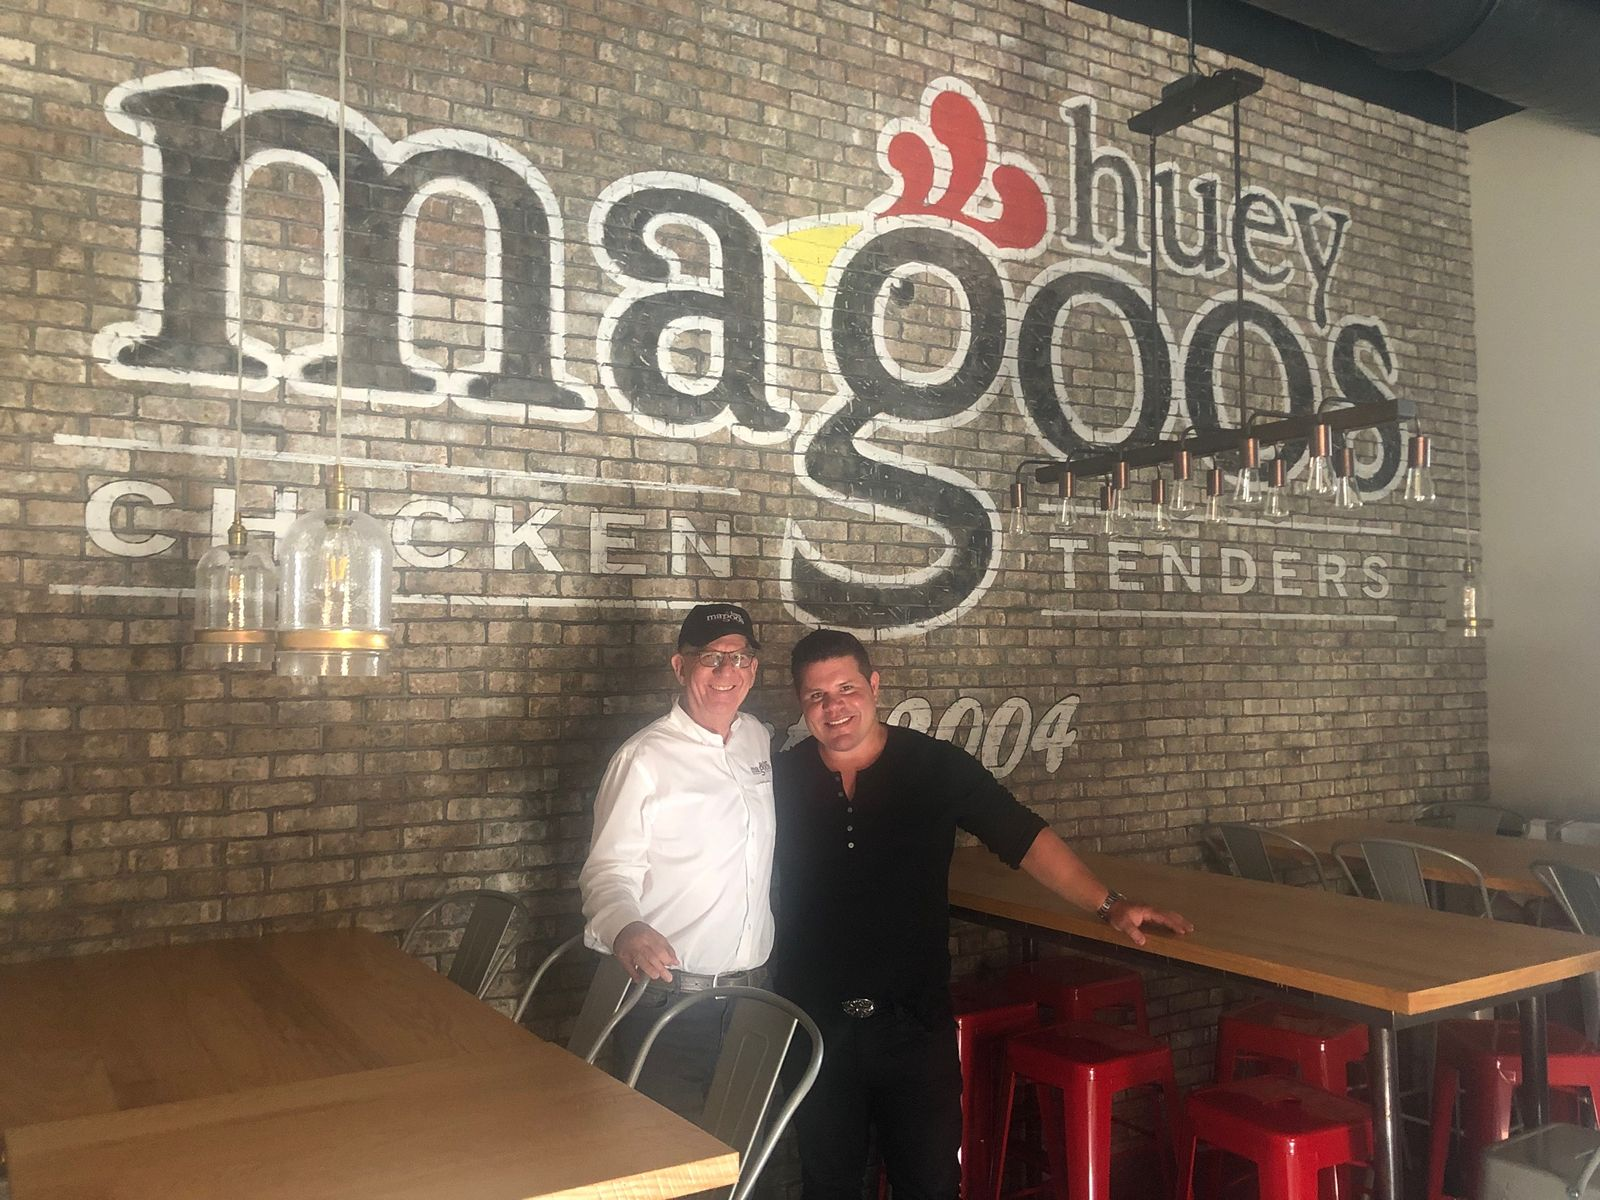 Huey Magoo's Chicken Tenders Announce Expansion To The South Georgia Region